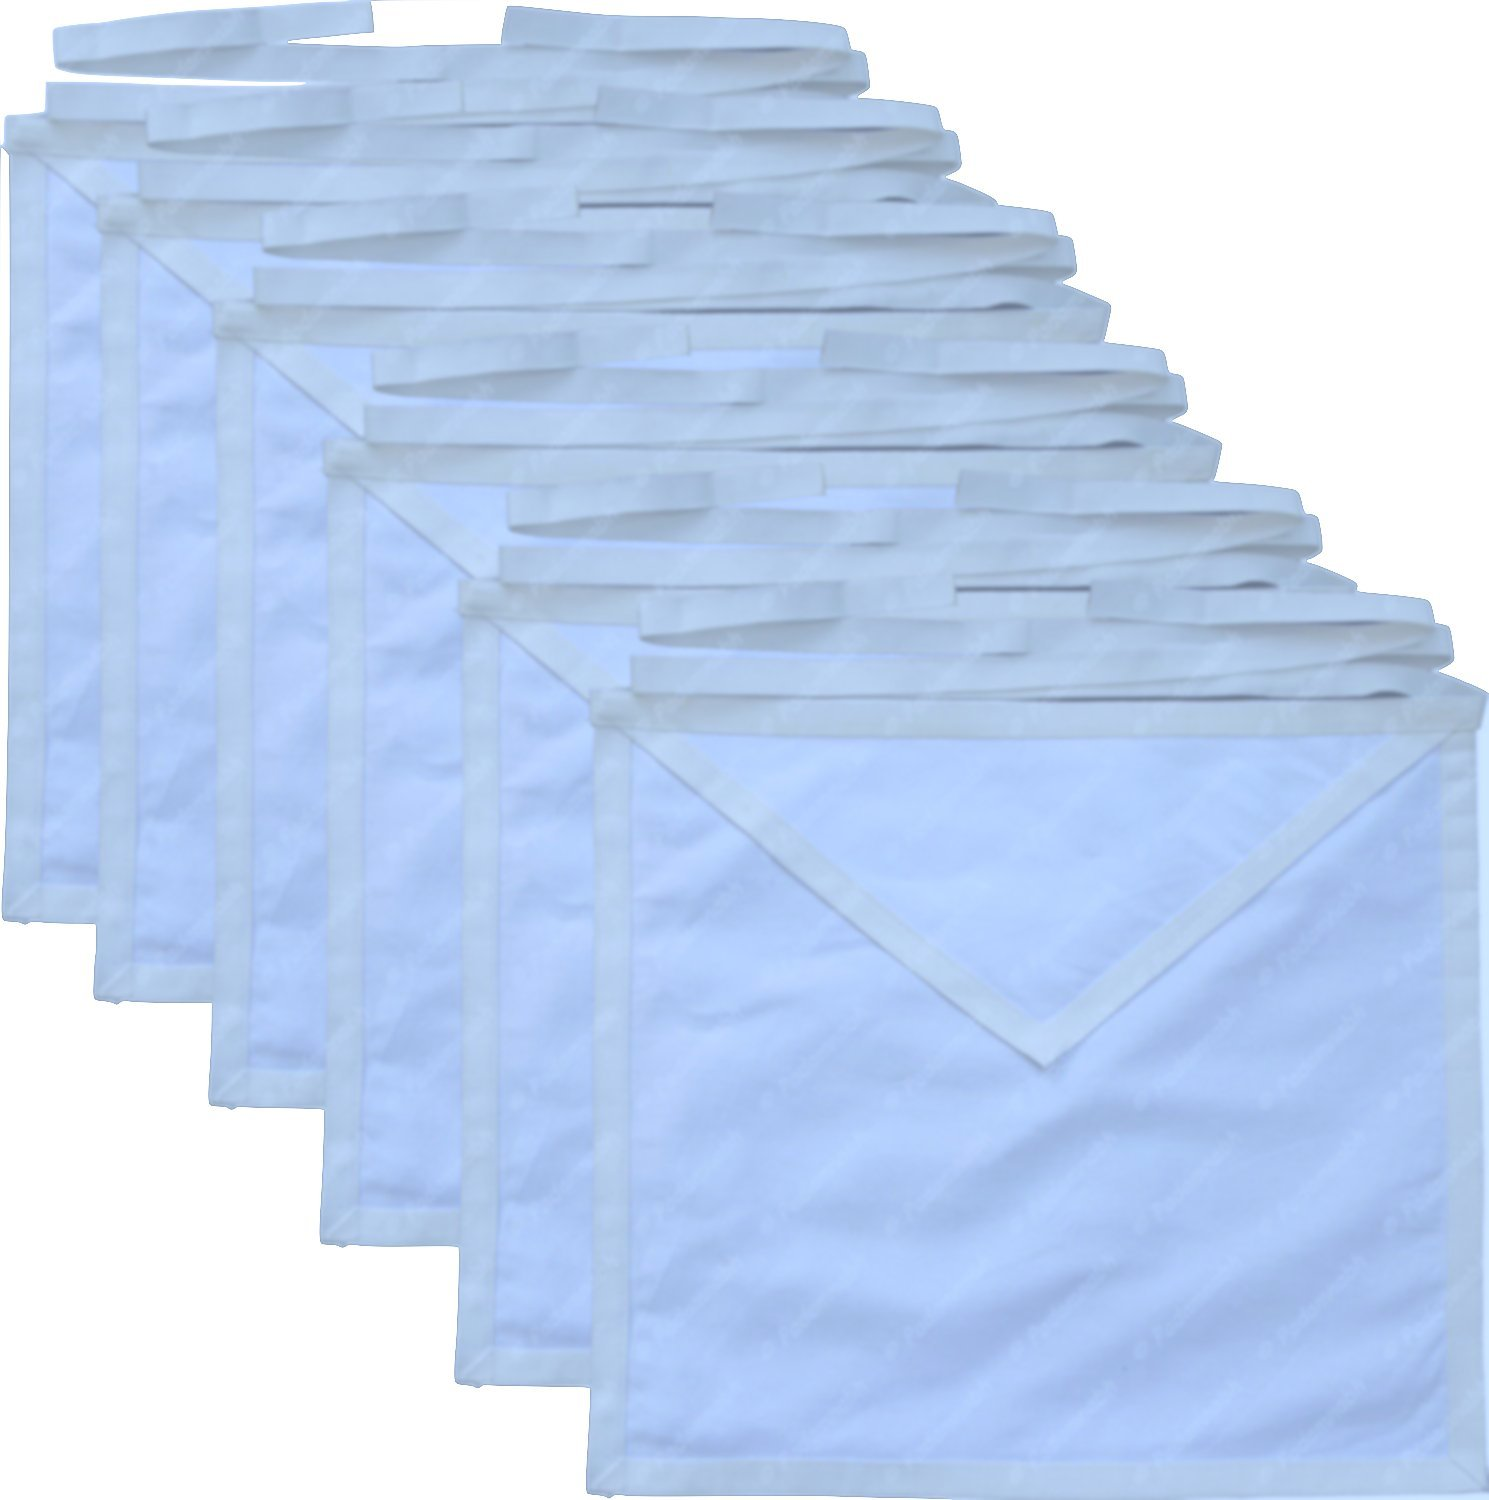 Masonic Member Aprons Set 12 Pack White Cotton Cloth For the Freemason By Equinox Masonic Regalia by Equinox MR